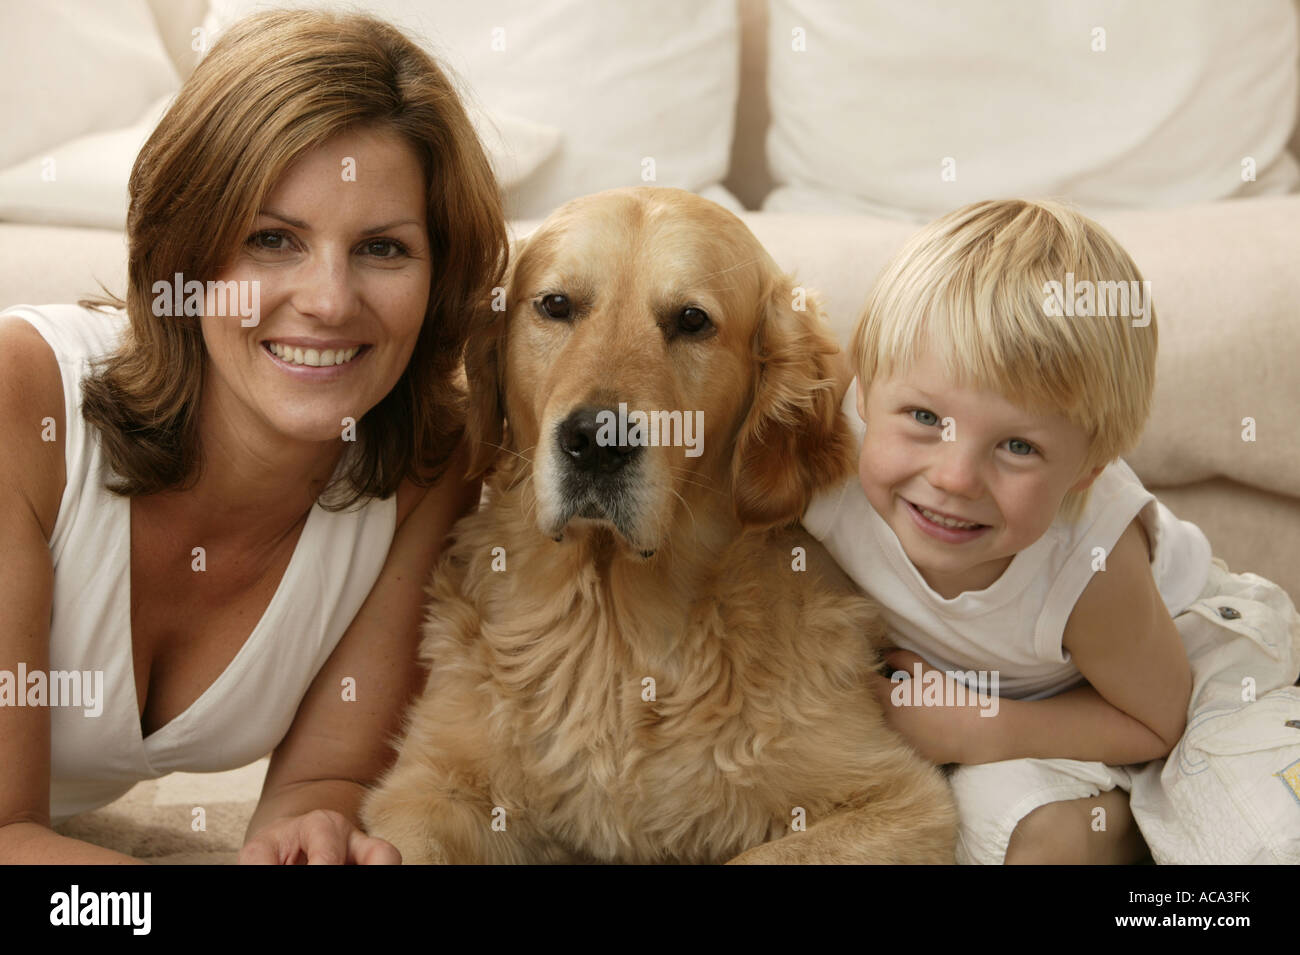 Mother and son inside with family dog - Stock Image